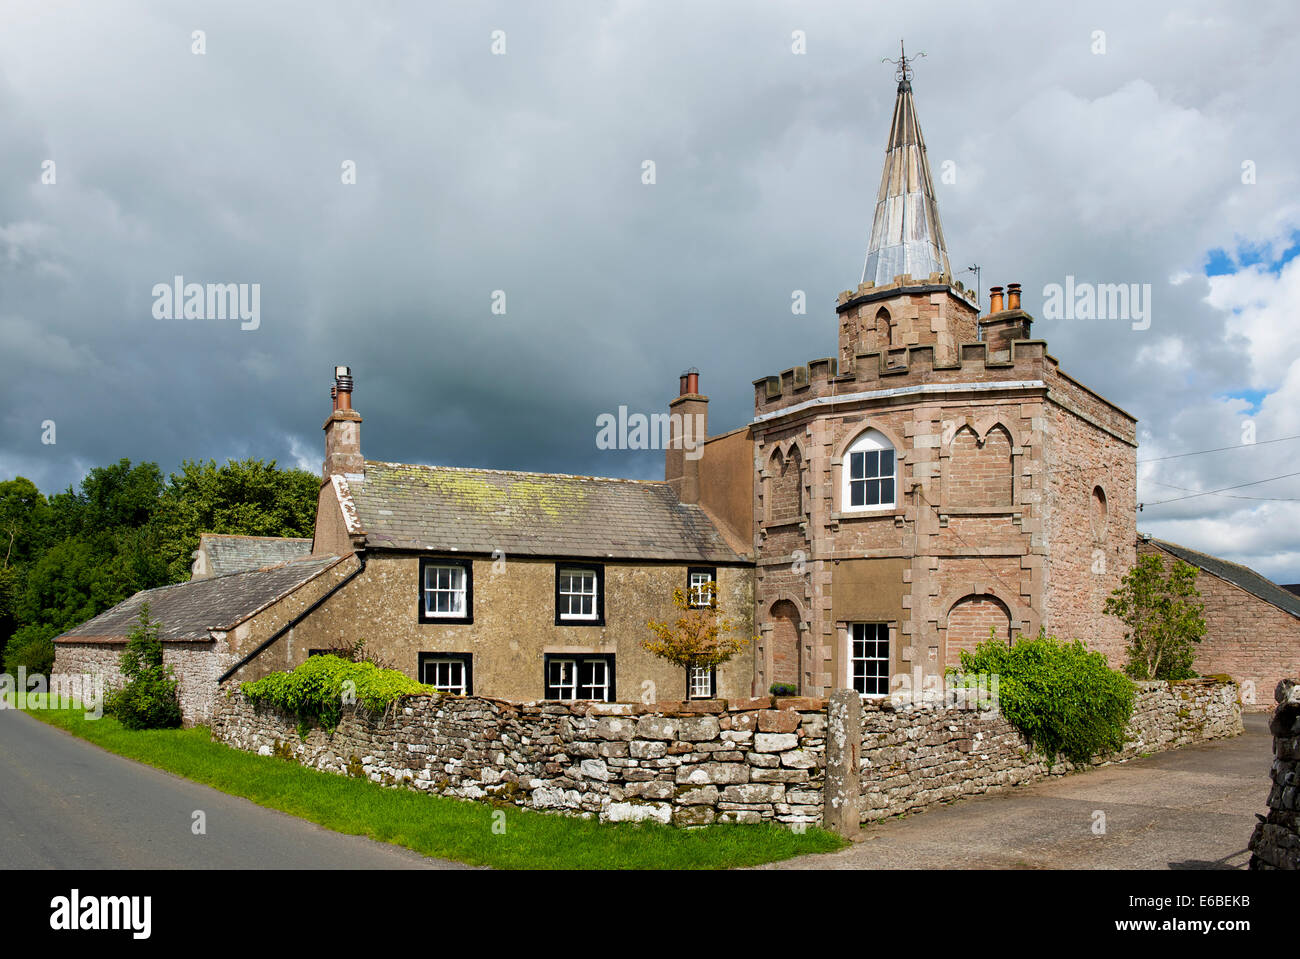 Spire House, near Greystoke, Cumbria, England UK - Stock Image